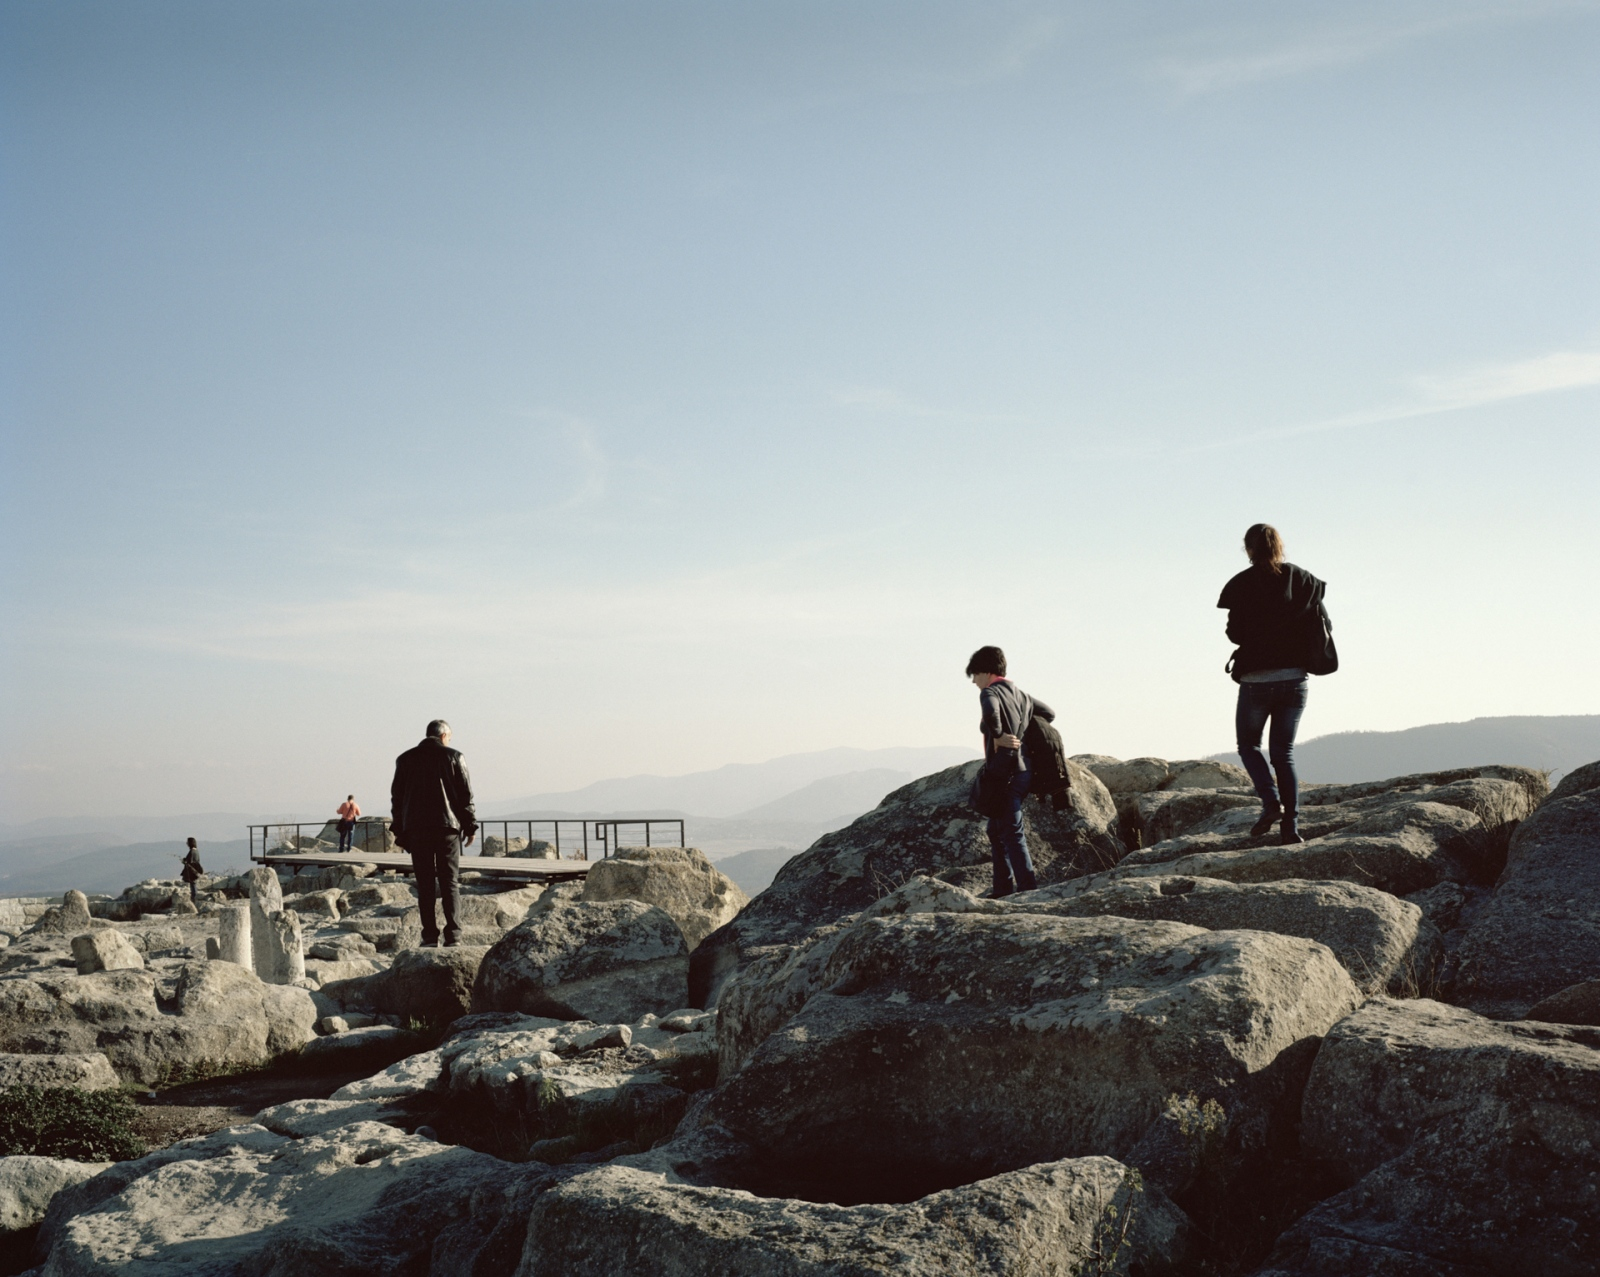 Bulgaria, Perperikon. Tourists visit the remains of the temple from where Alexander the Great decided to built his Empire.